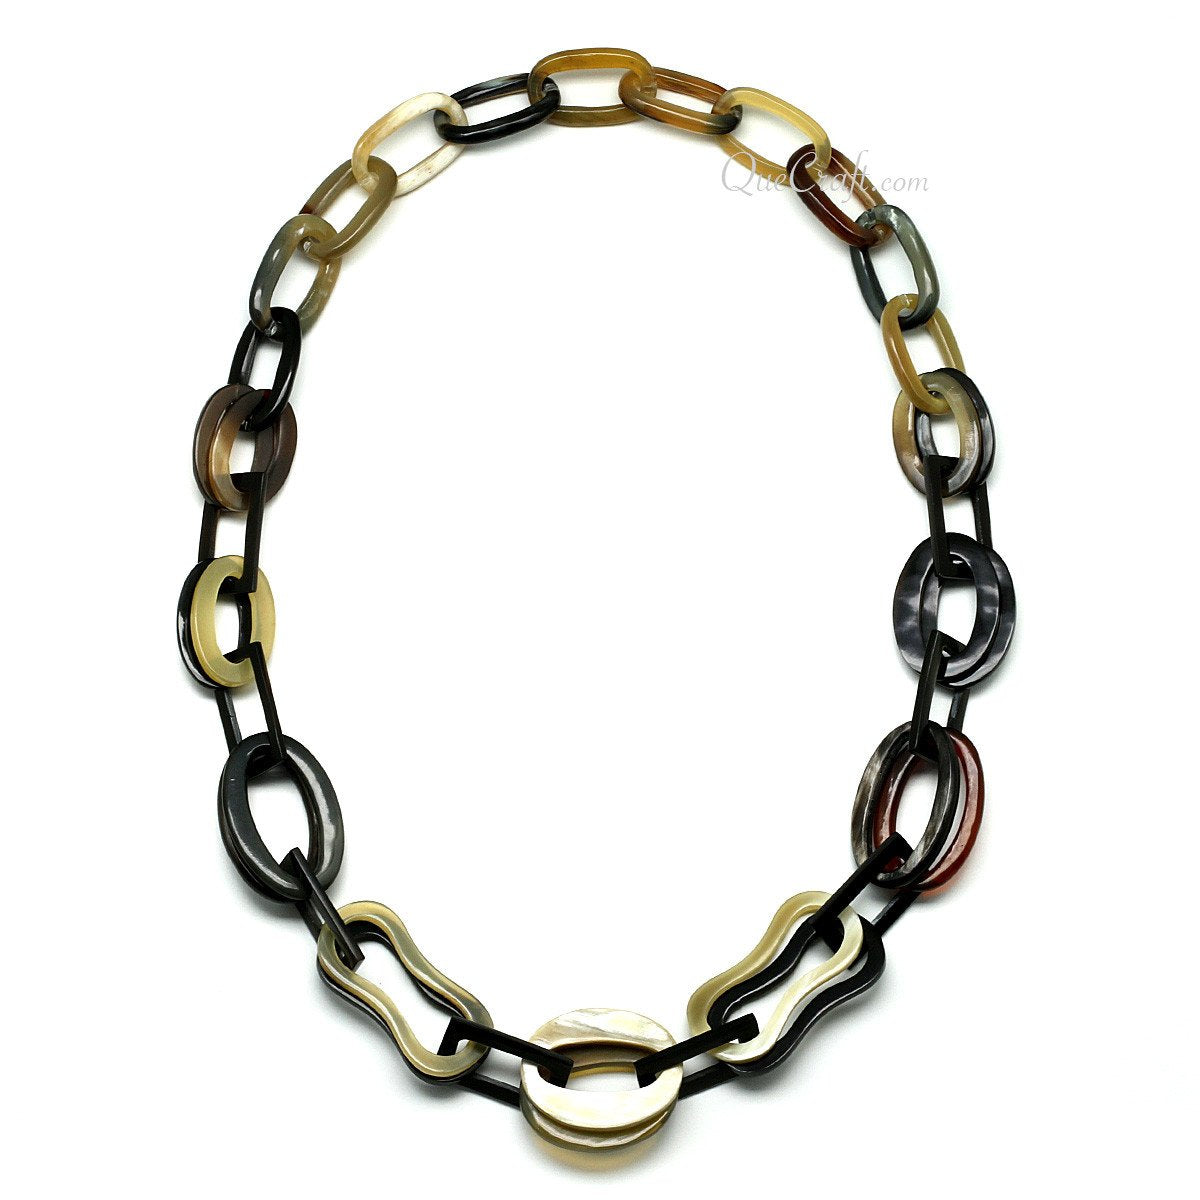 Horn Chain Necklace #11483 - HORN.JEWELRY by QueCraft